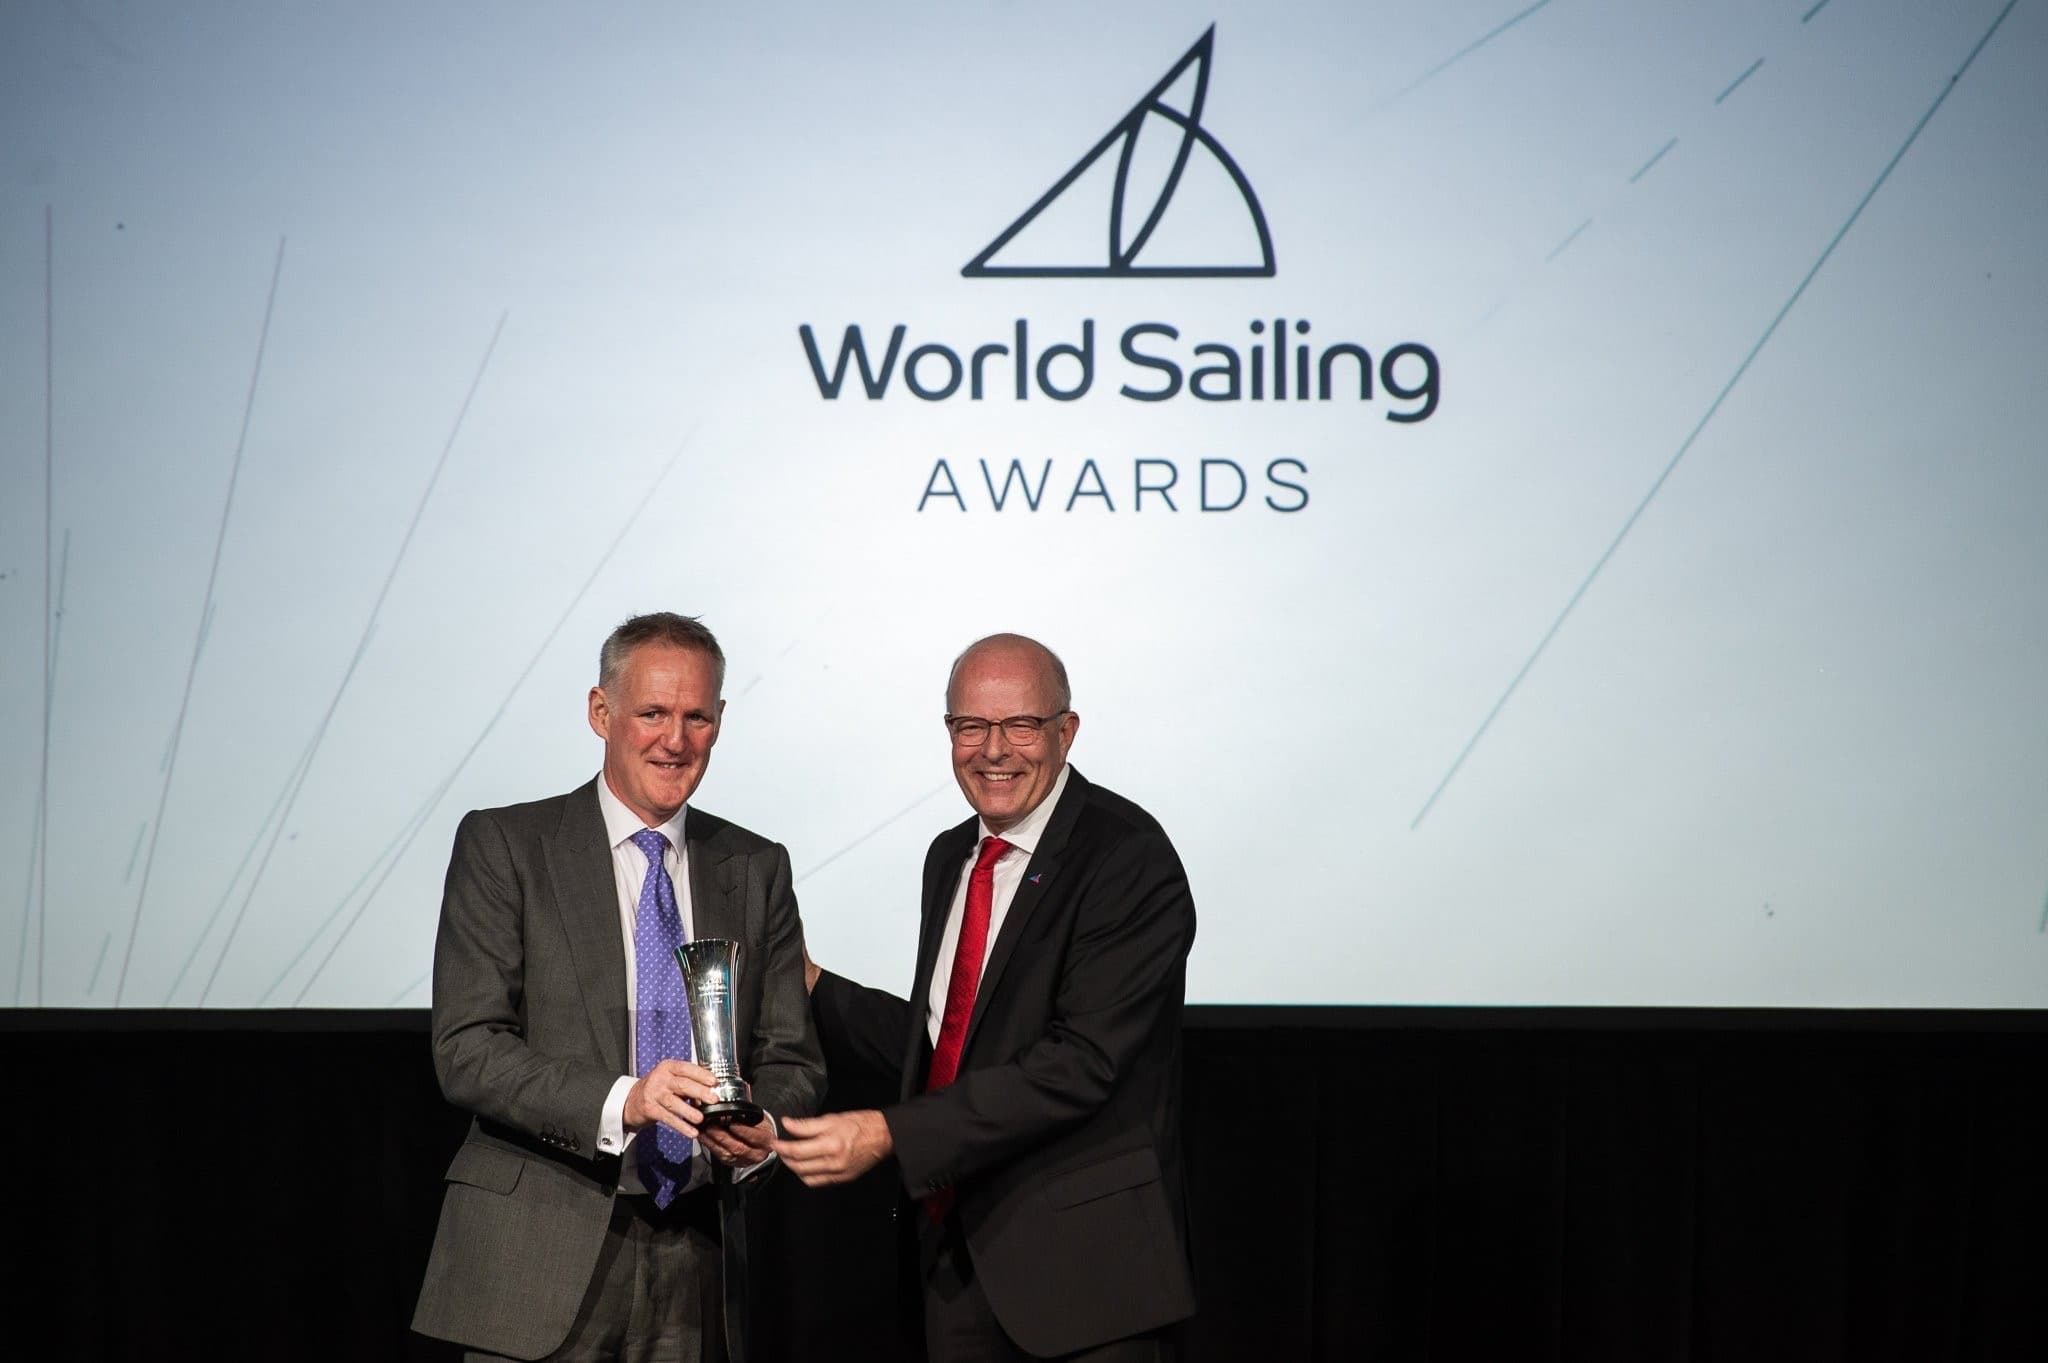 Oman Sail honoured with 2019 President's Development Award at World Sailing Awards Ceremony